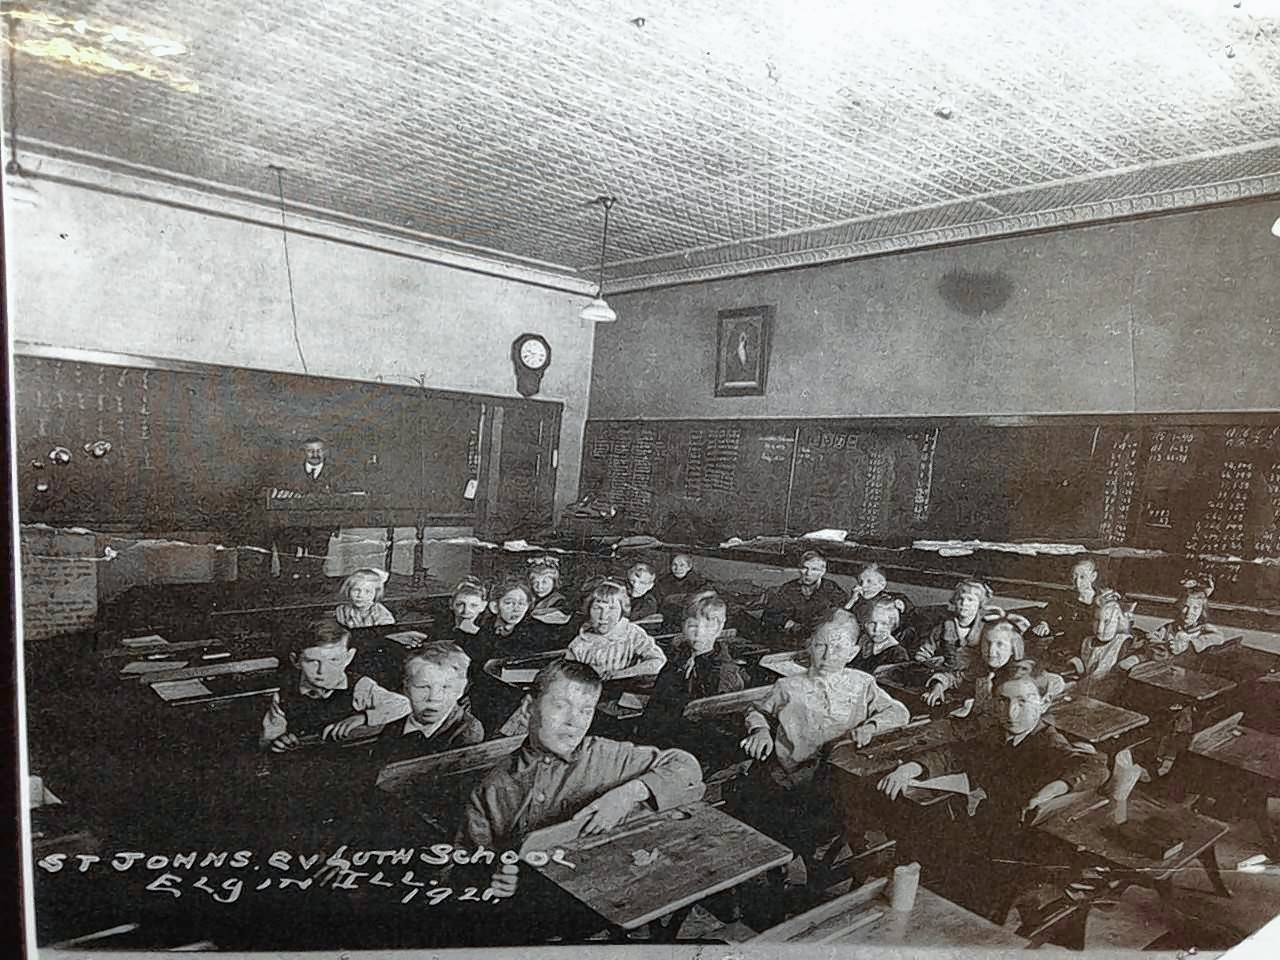 Students pose for a class photo in 1920 in St. John's Lutheran School of Elgin. The school celebrated its 150th anniversary this year.